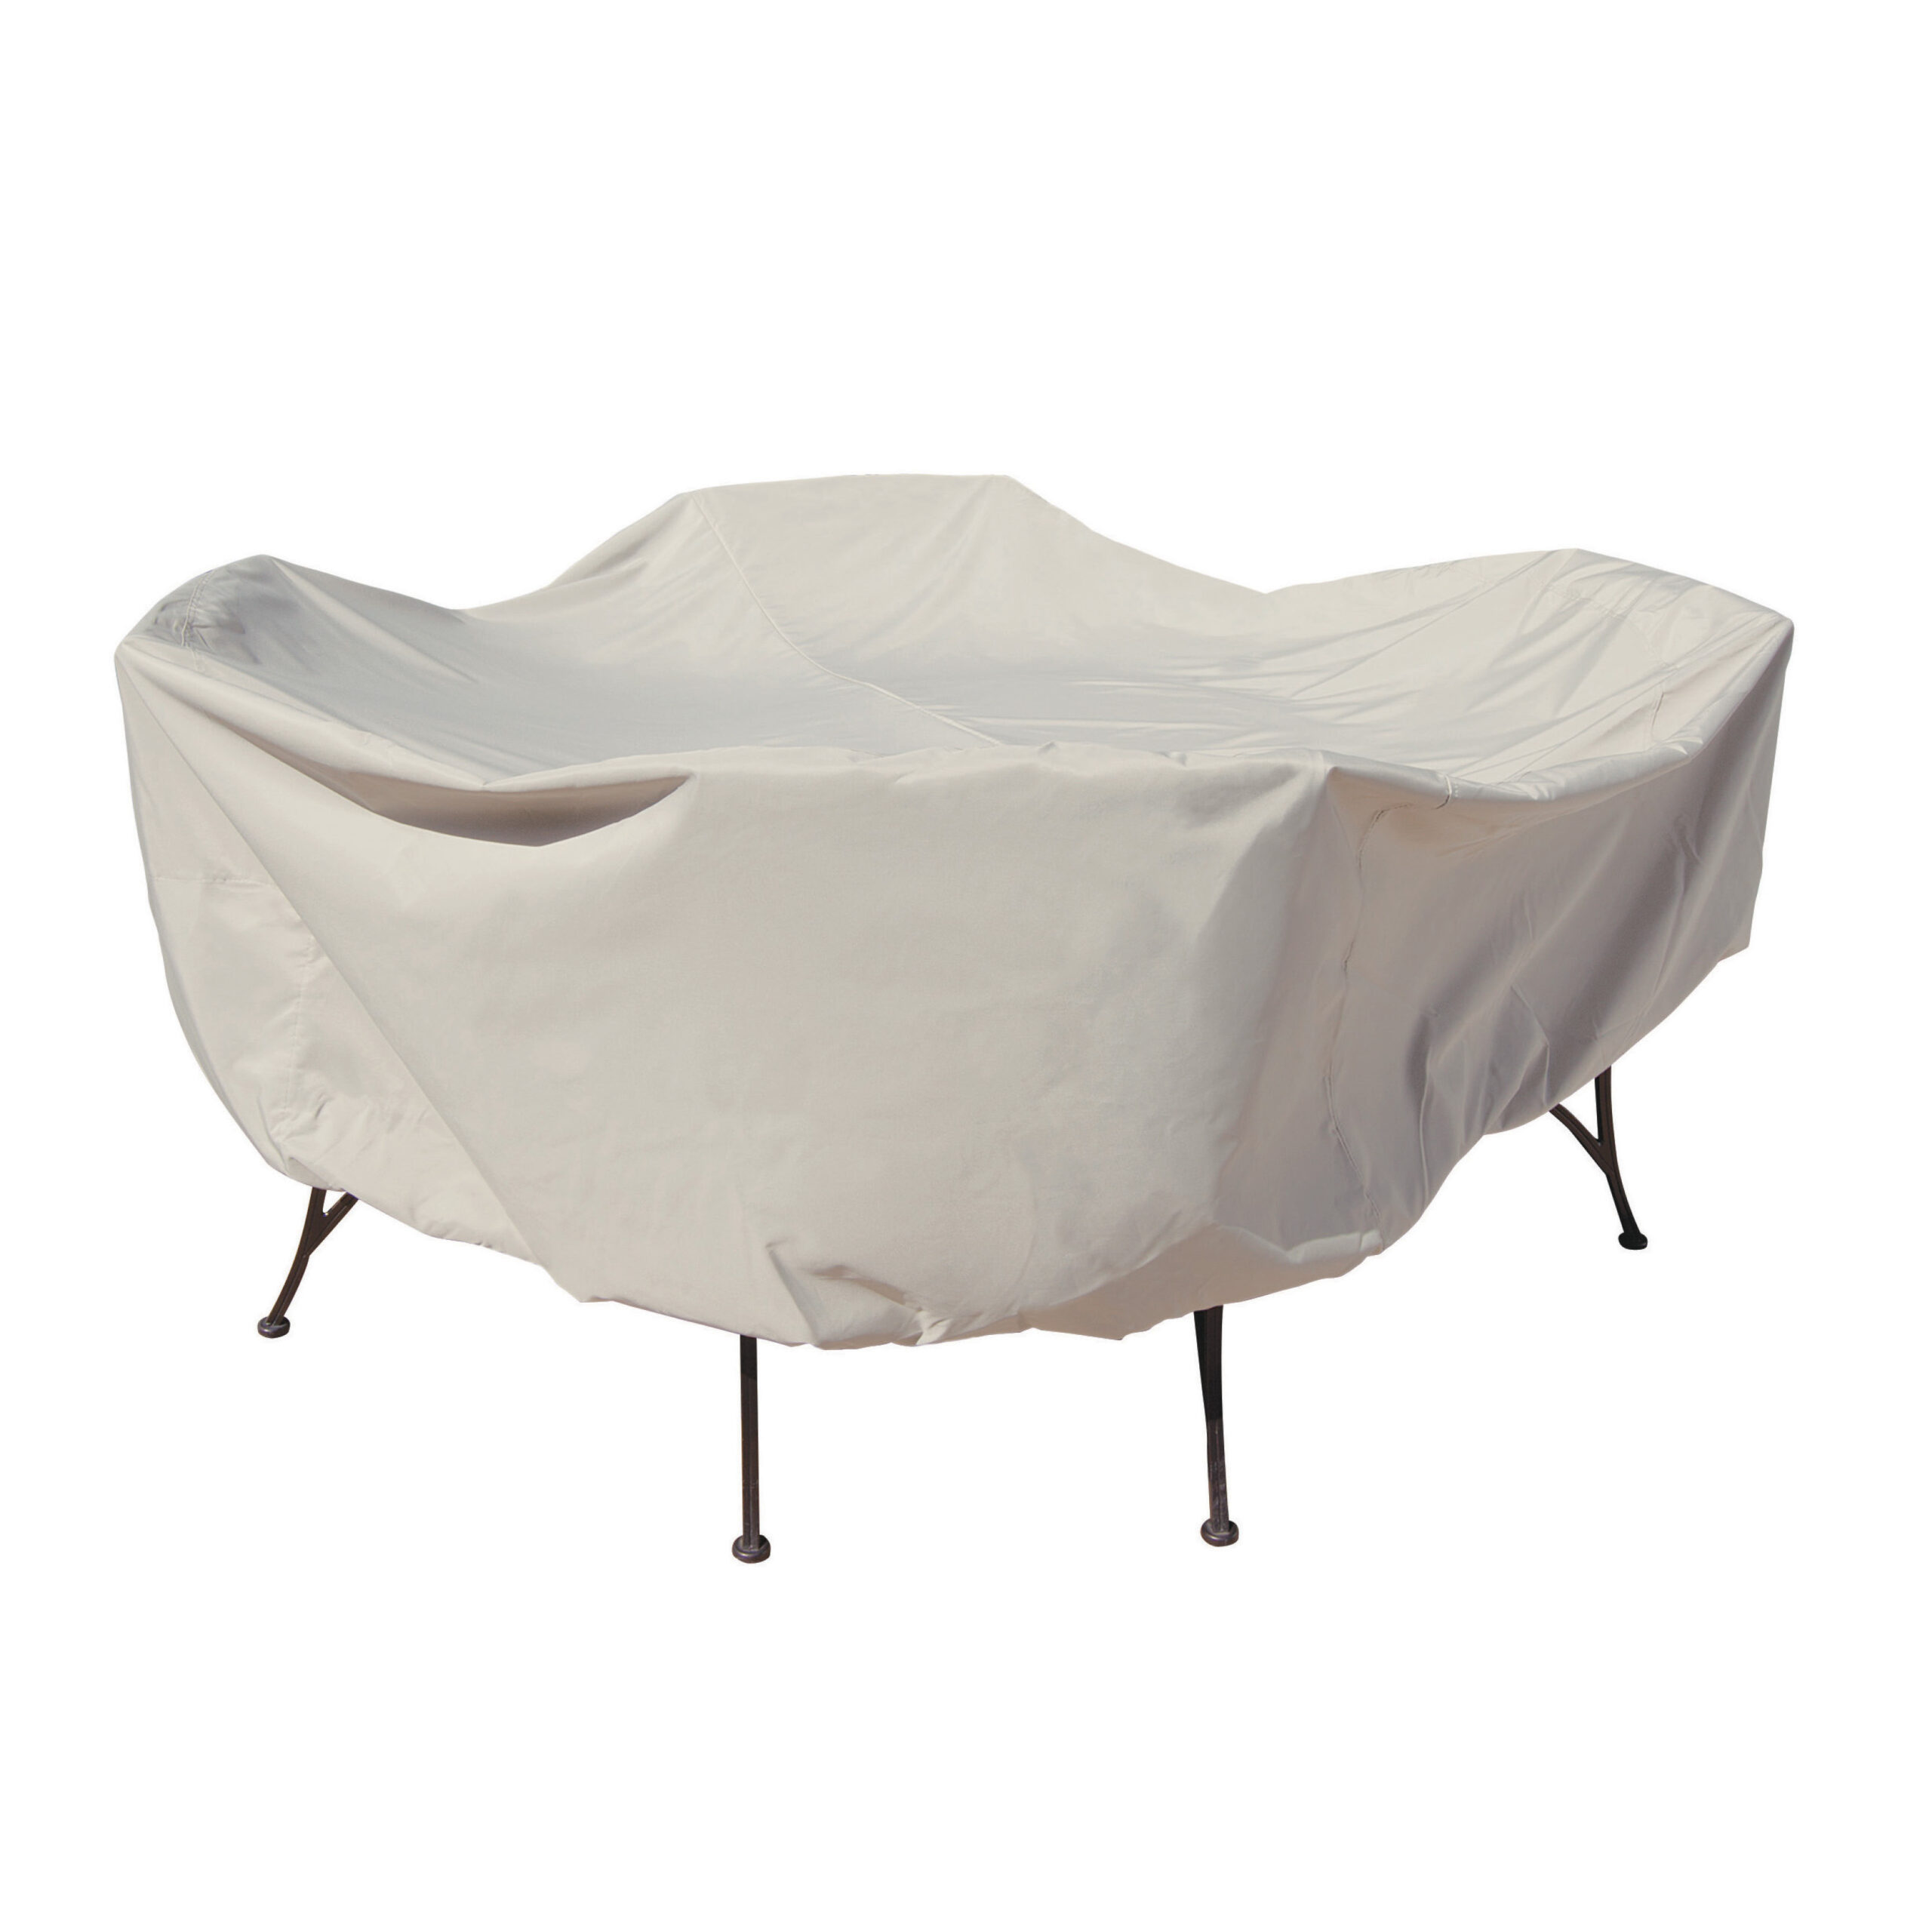 treasure garden protective furniture cover for a patio set with 48 inch round table and chairs